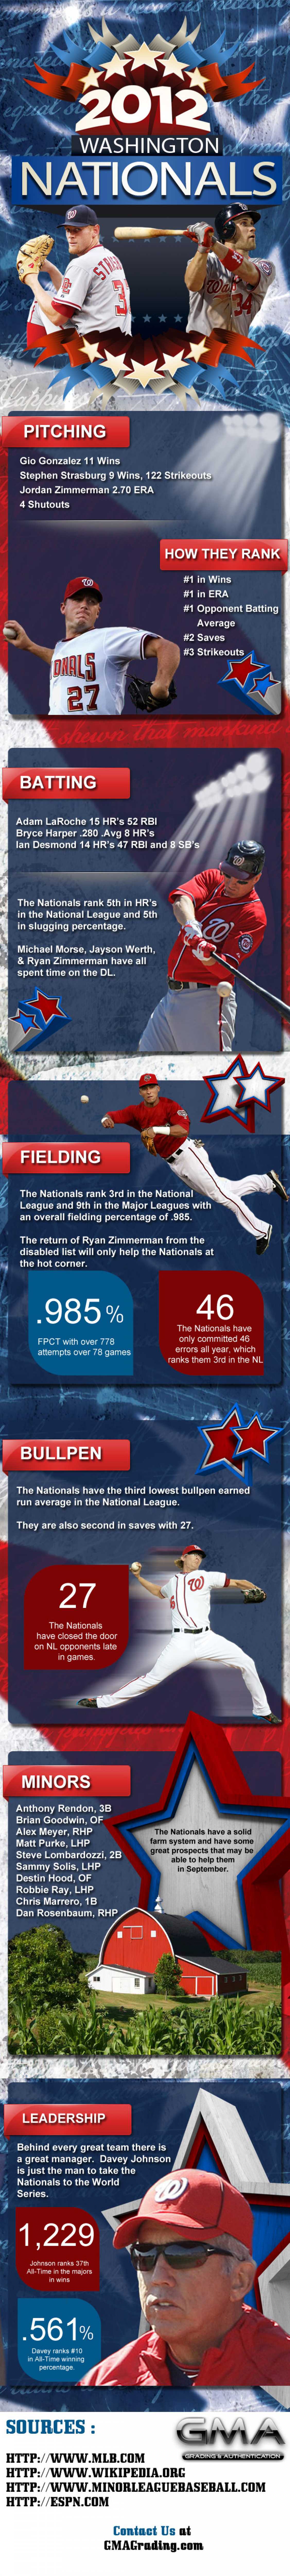 Washington National World Series 2012 Infographic